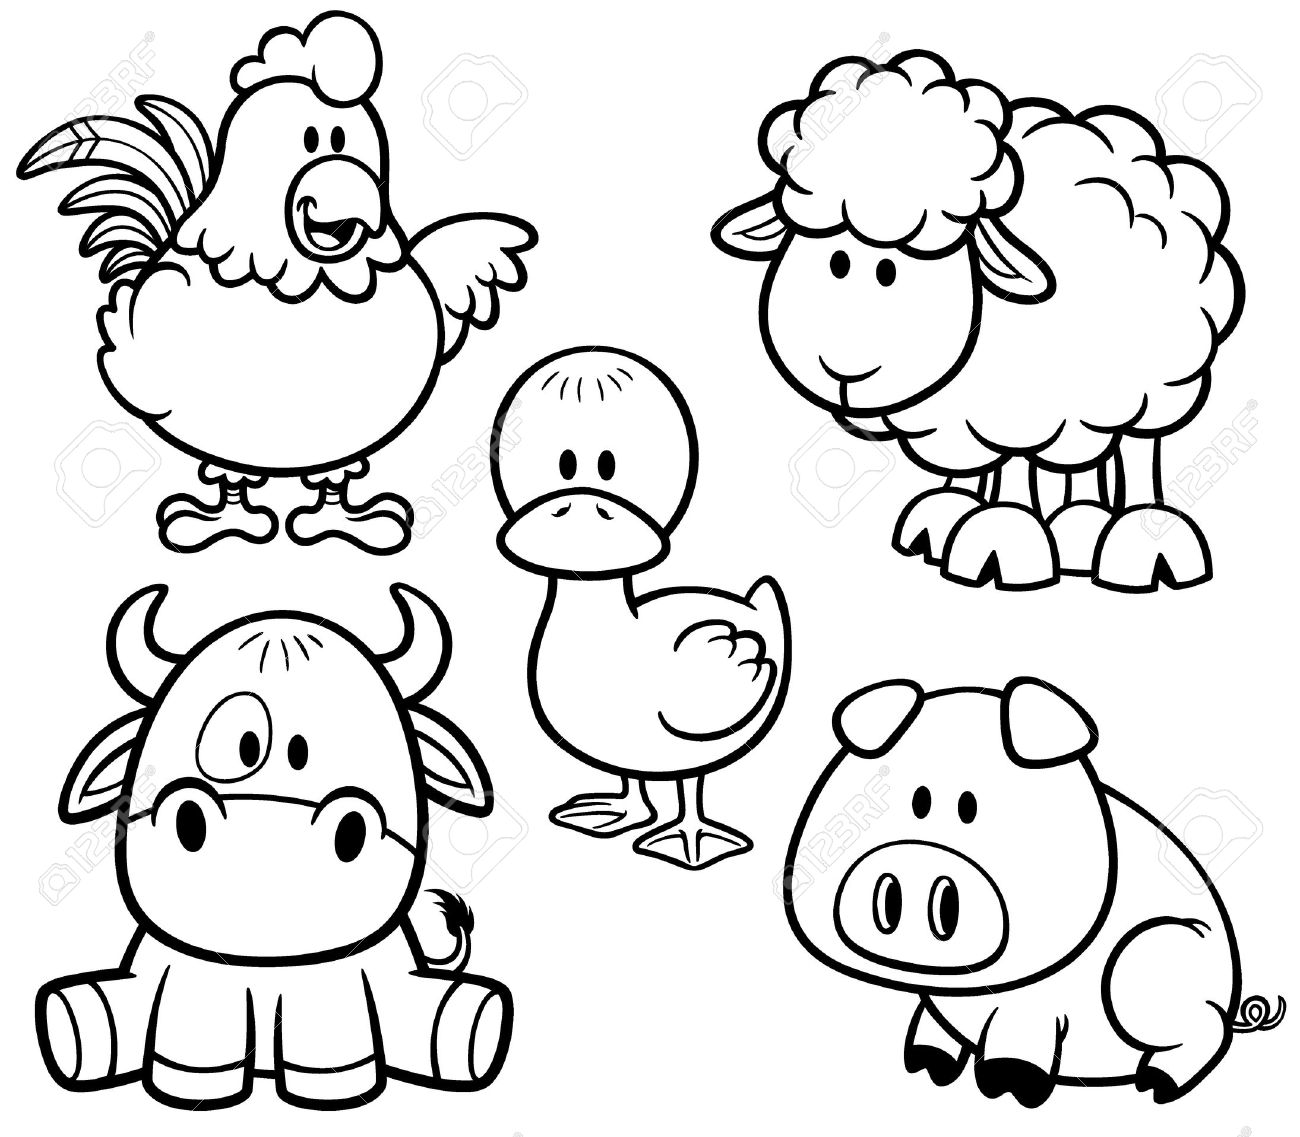 free pictures of farm animals to print free printable farm animal coloring pages for kids of pictures free print farm to animals